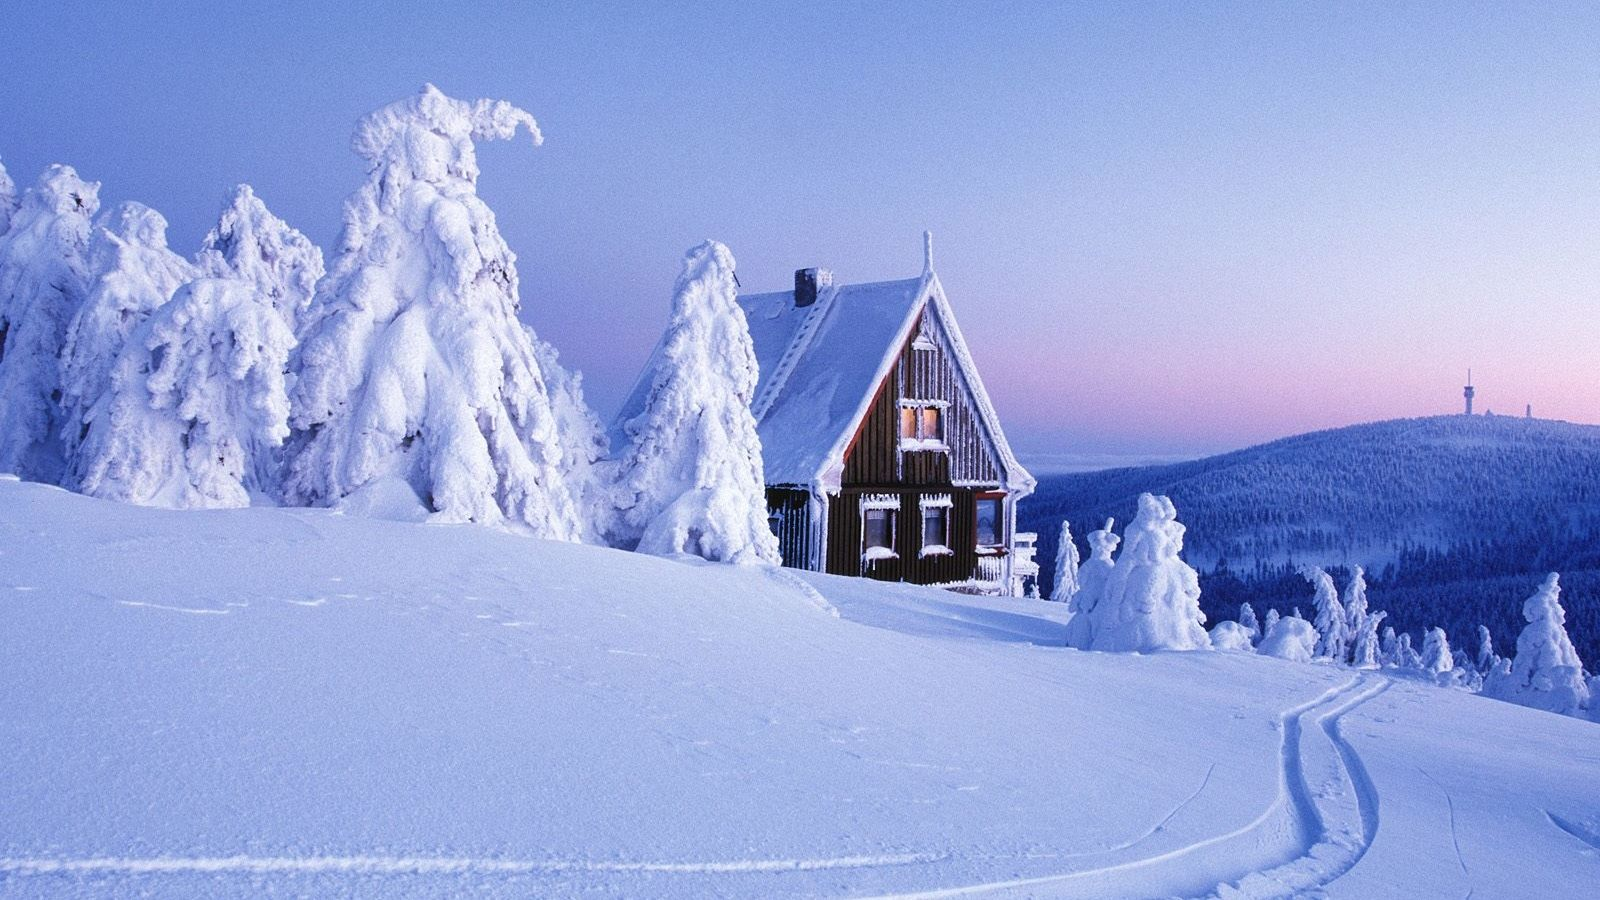 Snow Desktop Wallpapers Top Free Snow Desktop Backgrounds